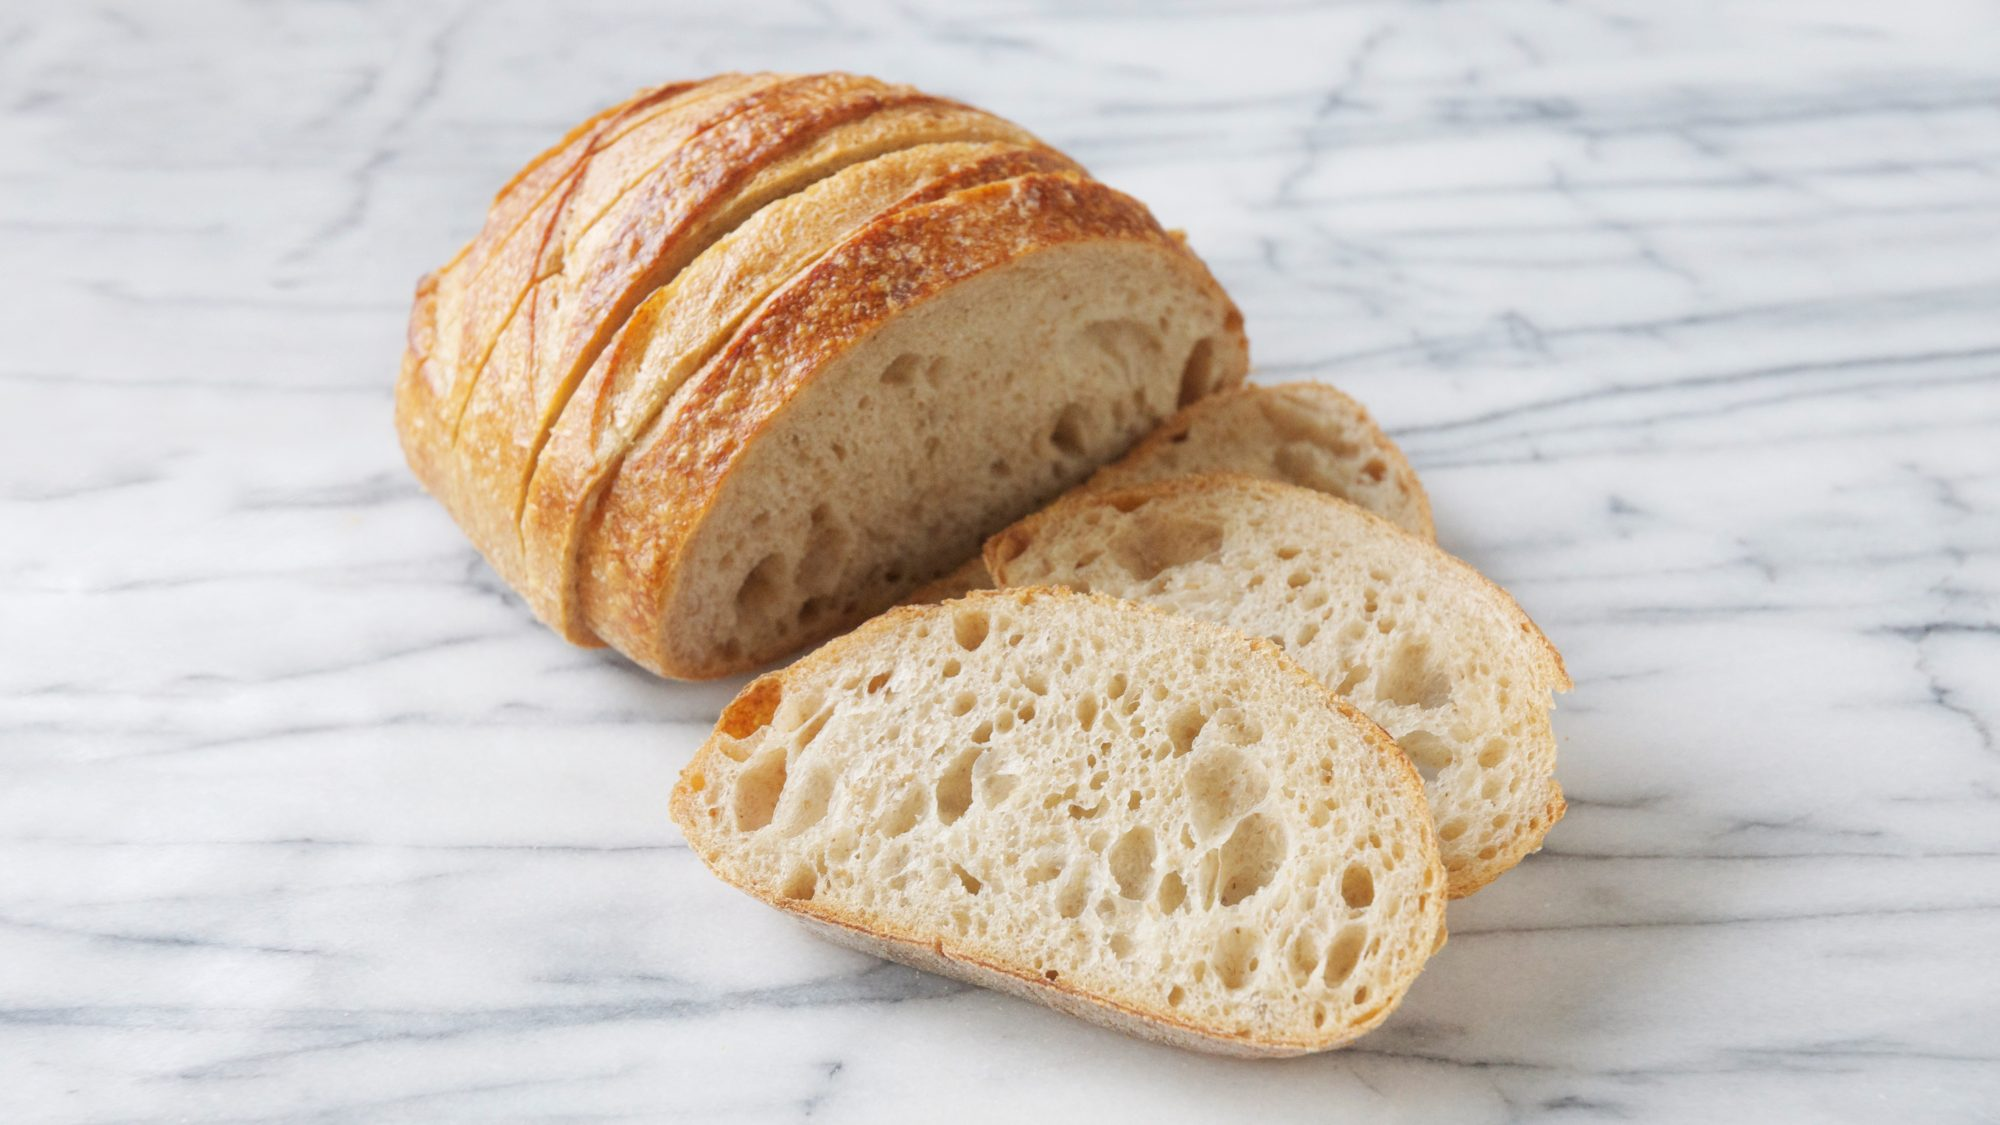 sourdough bread made with two-ingredient sourdough starter